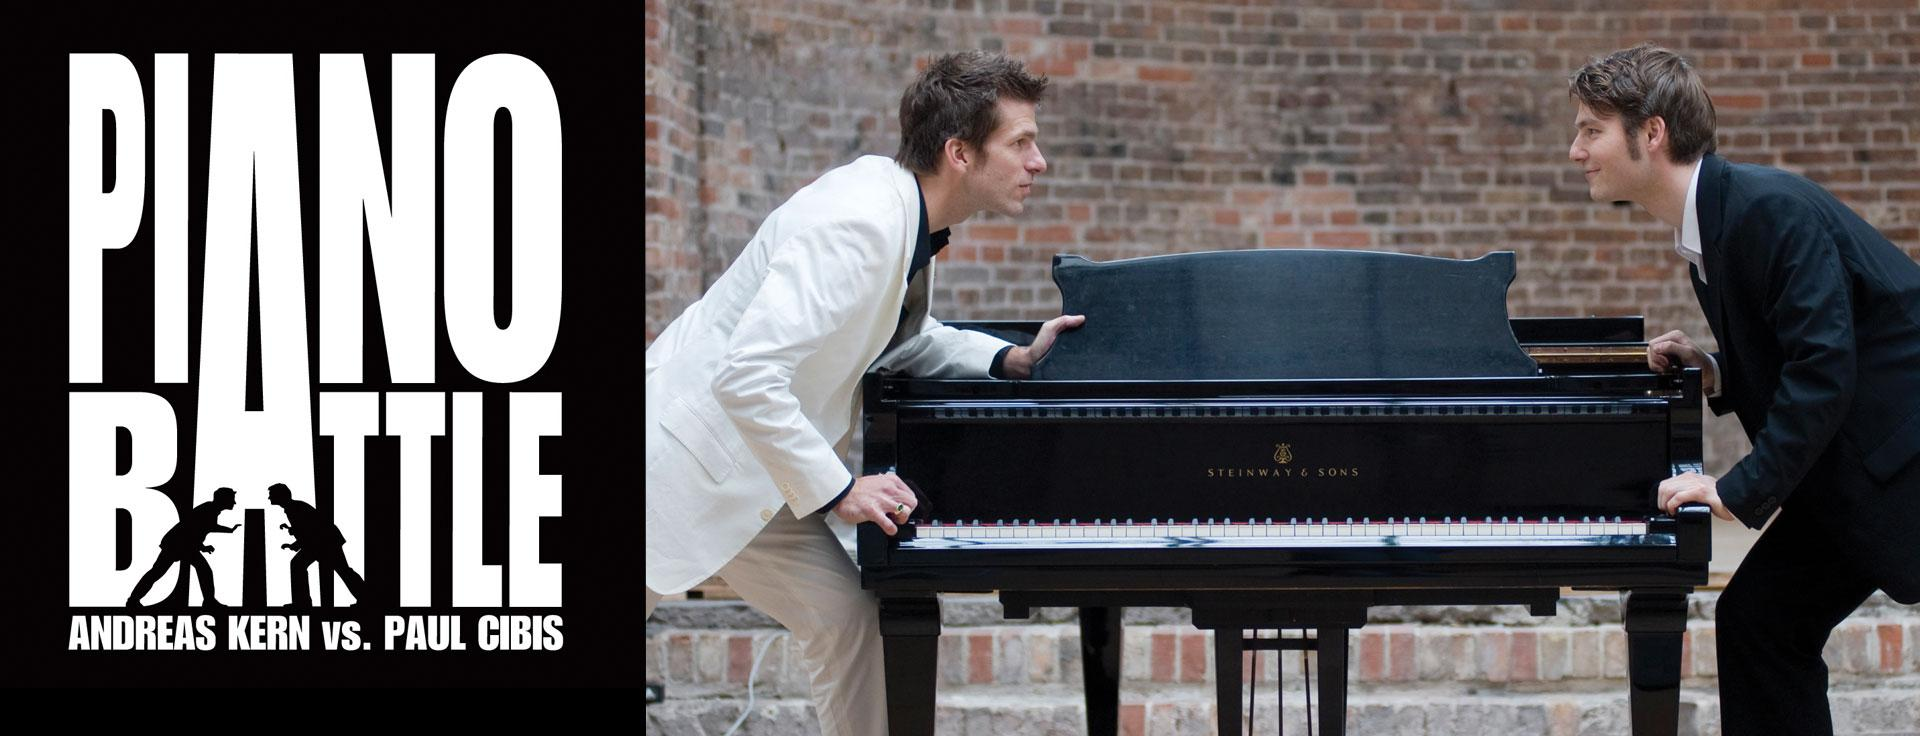 Two guys on either side of a piano grasping on the piano looking like they are ready for battle